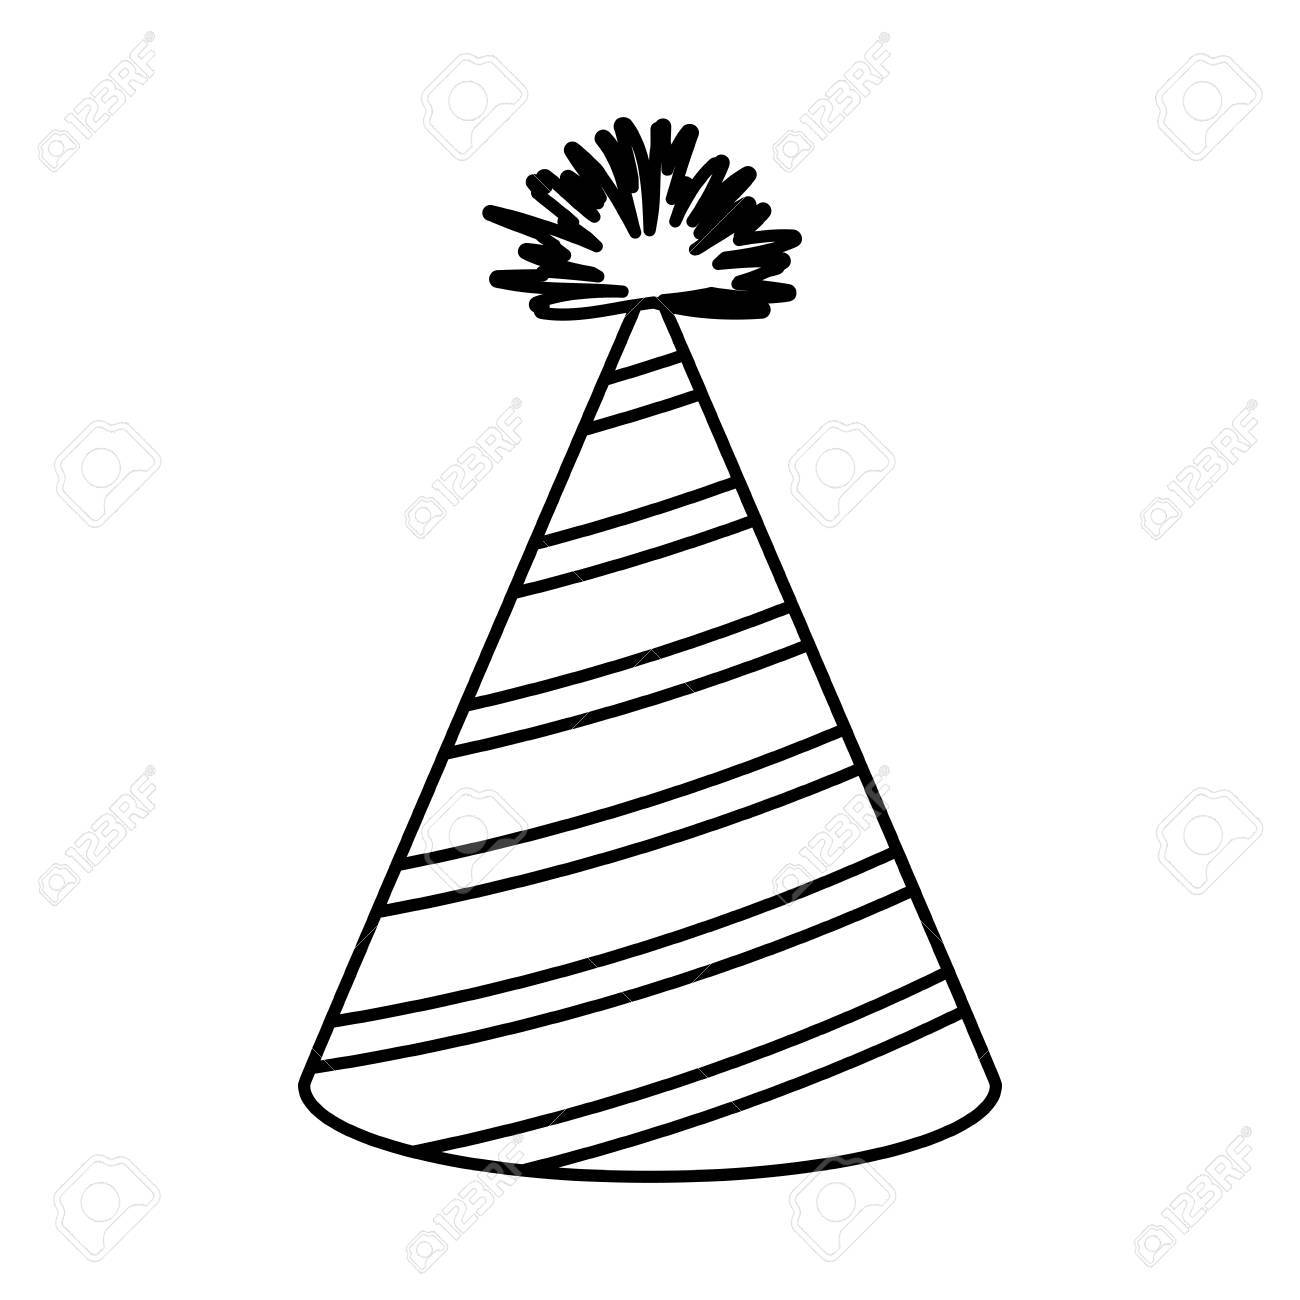 party hat drawing at getdrawings com free for personal use party hat drawing of your choice new year's eve clipart free new years eve clip art 2018 borders